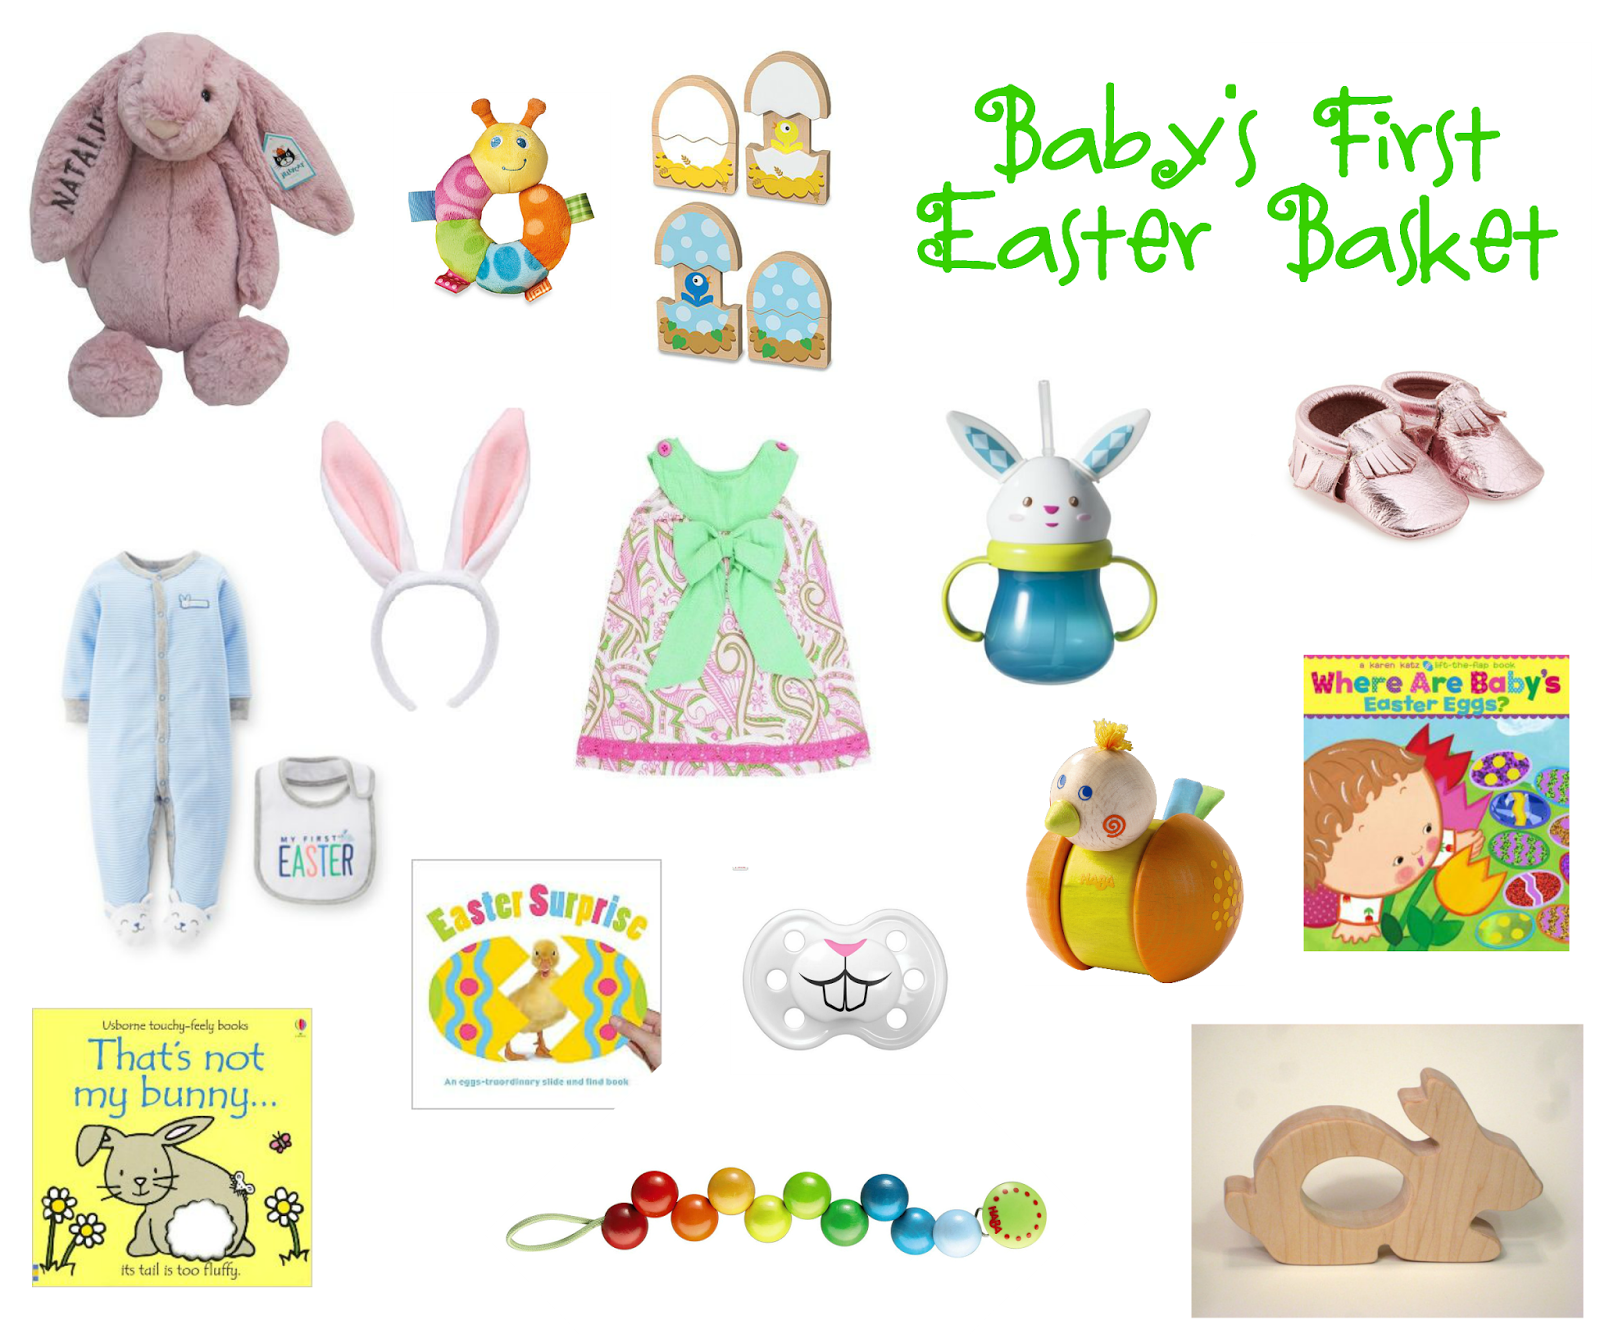 Babys first easter basket see full post for baby toddler babys first easter basket see full post for baby toddler easter basket negle Images